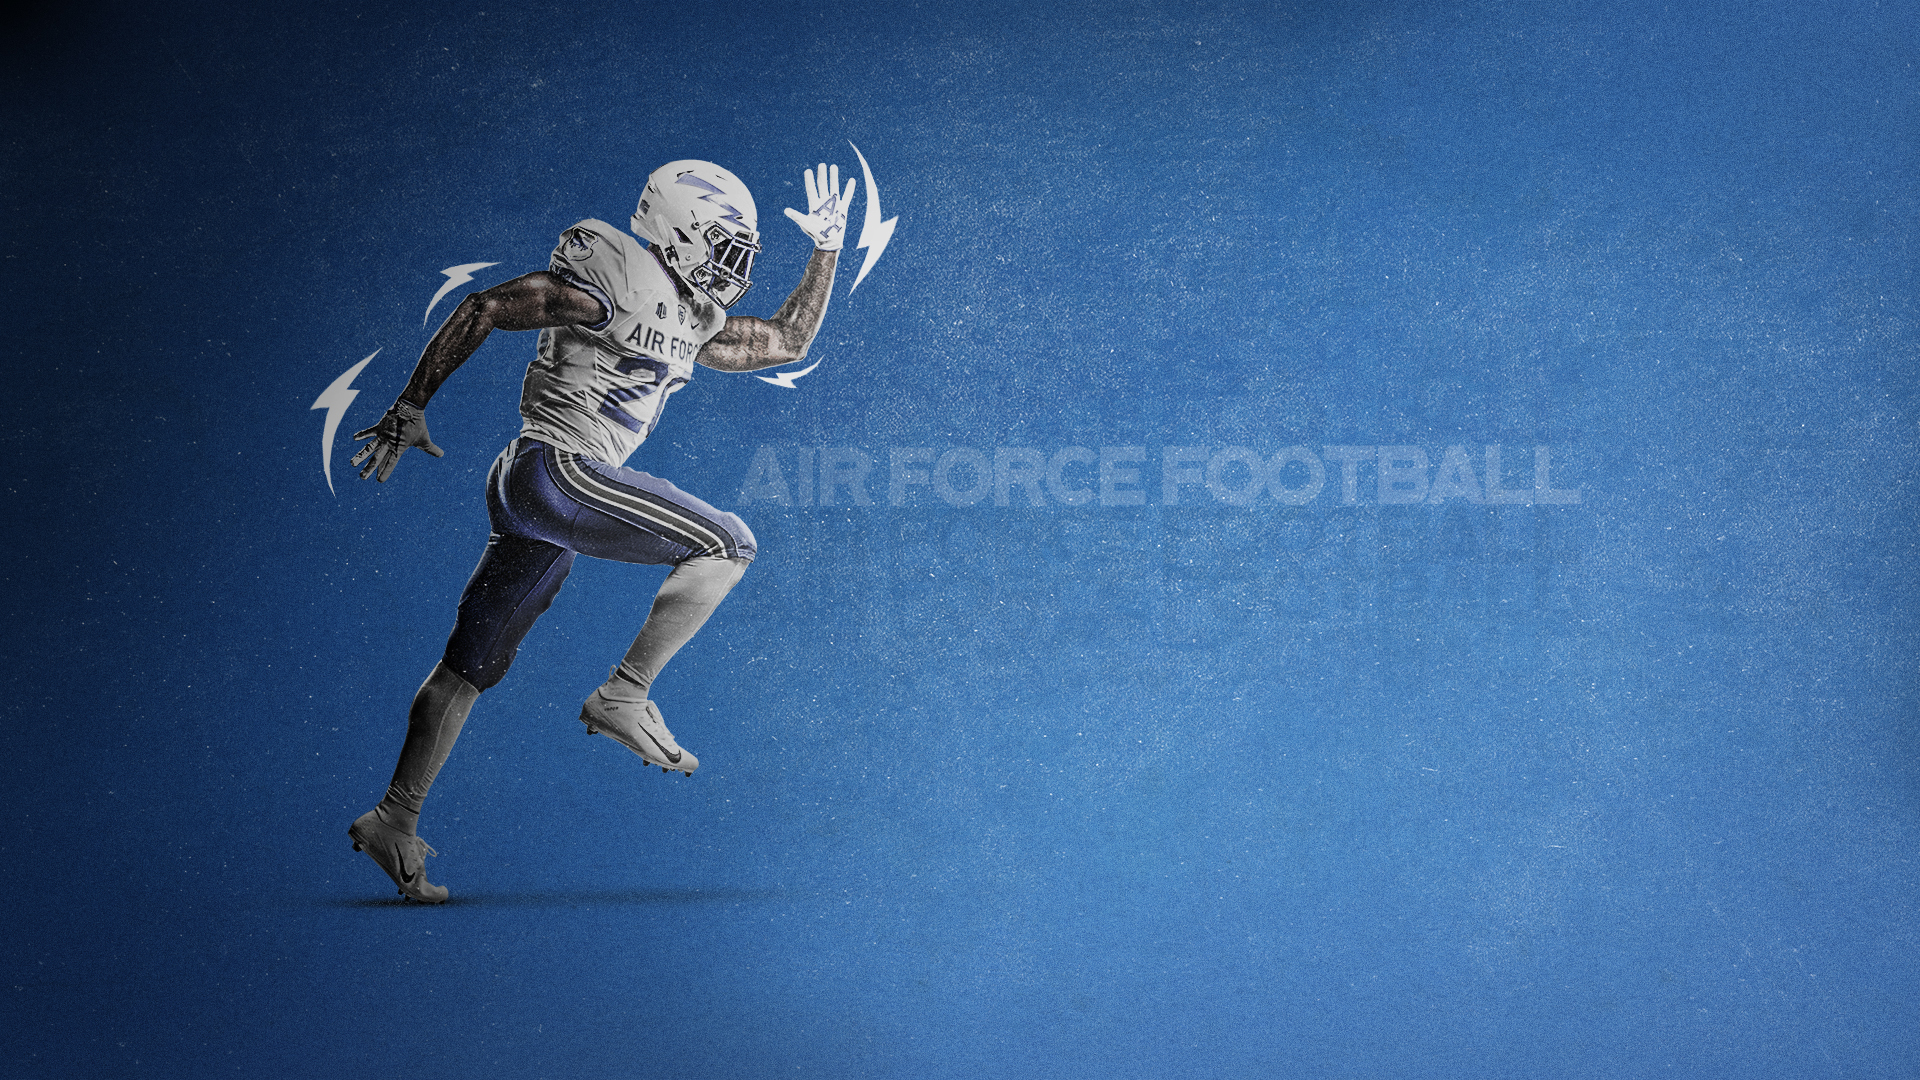 Wallpapers Air Force Academy Athletics